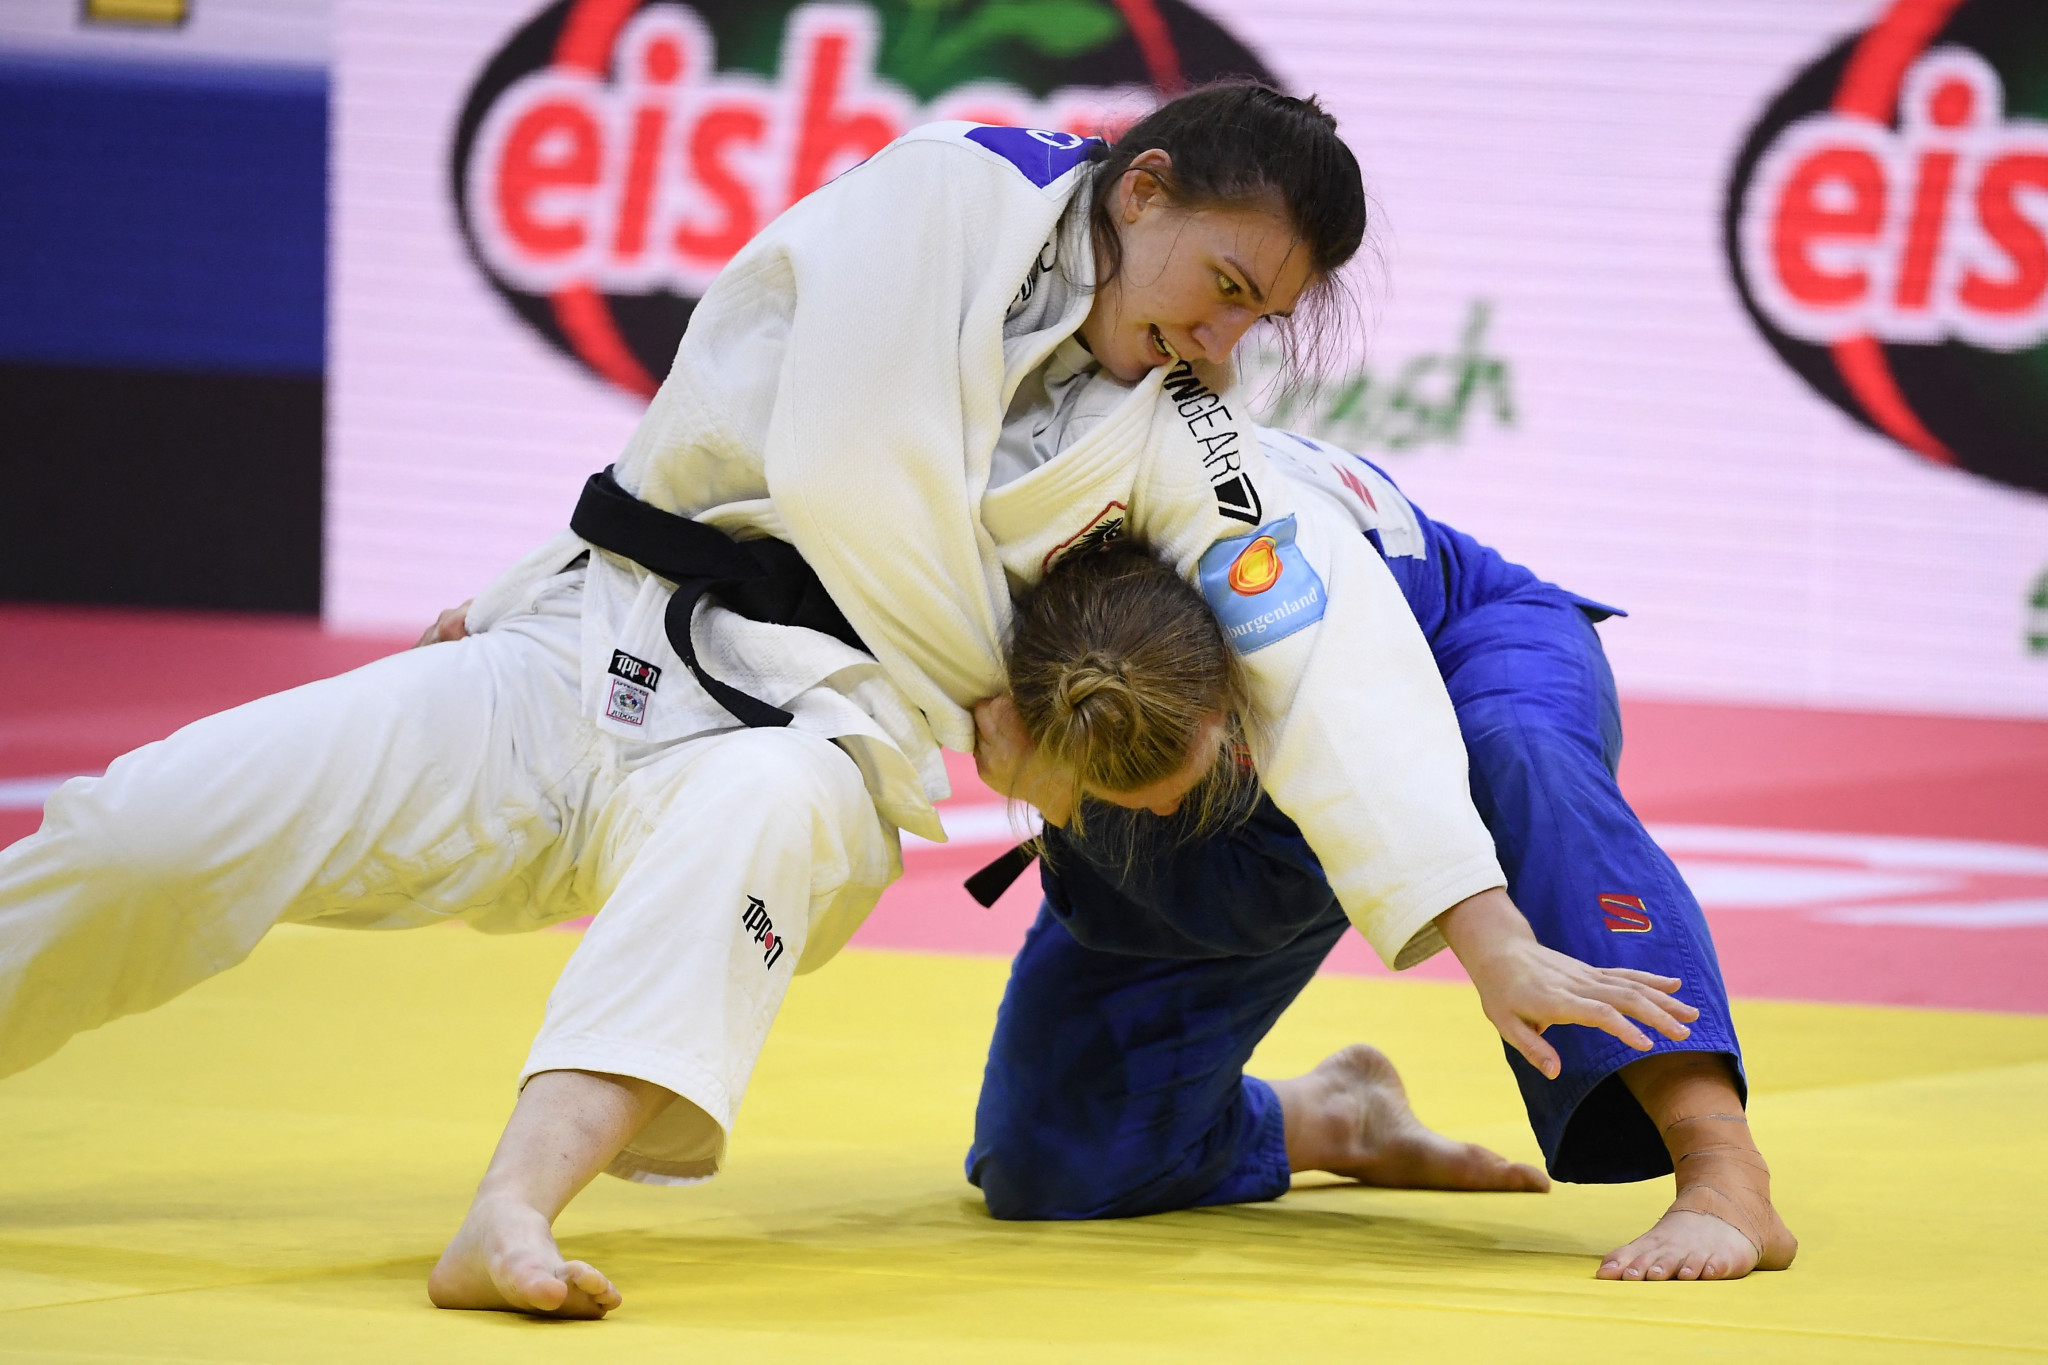 Austrian Michaela Polleres, in white, tries to pin Australia's Aoife Coughlan down in the quarter-finals ©Getty Images